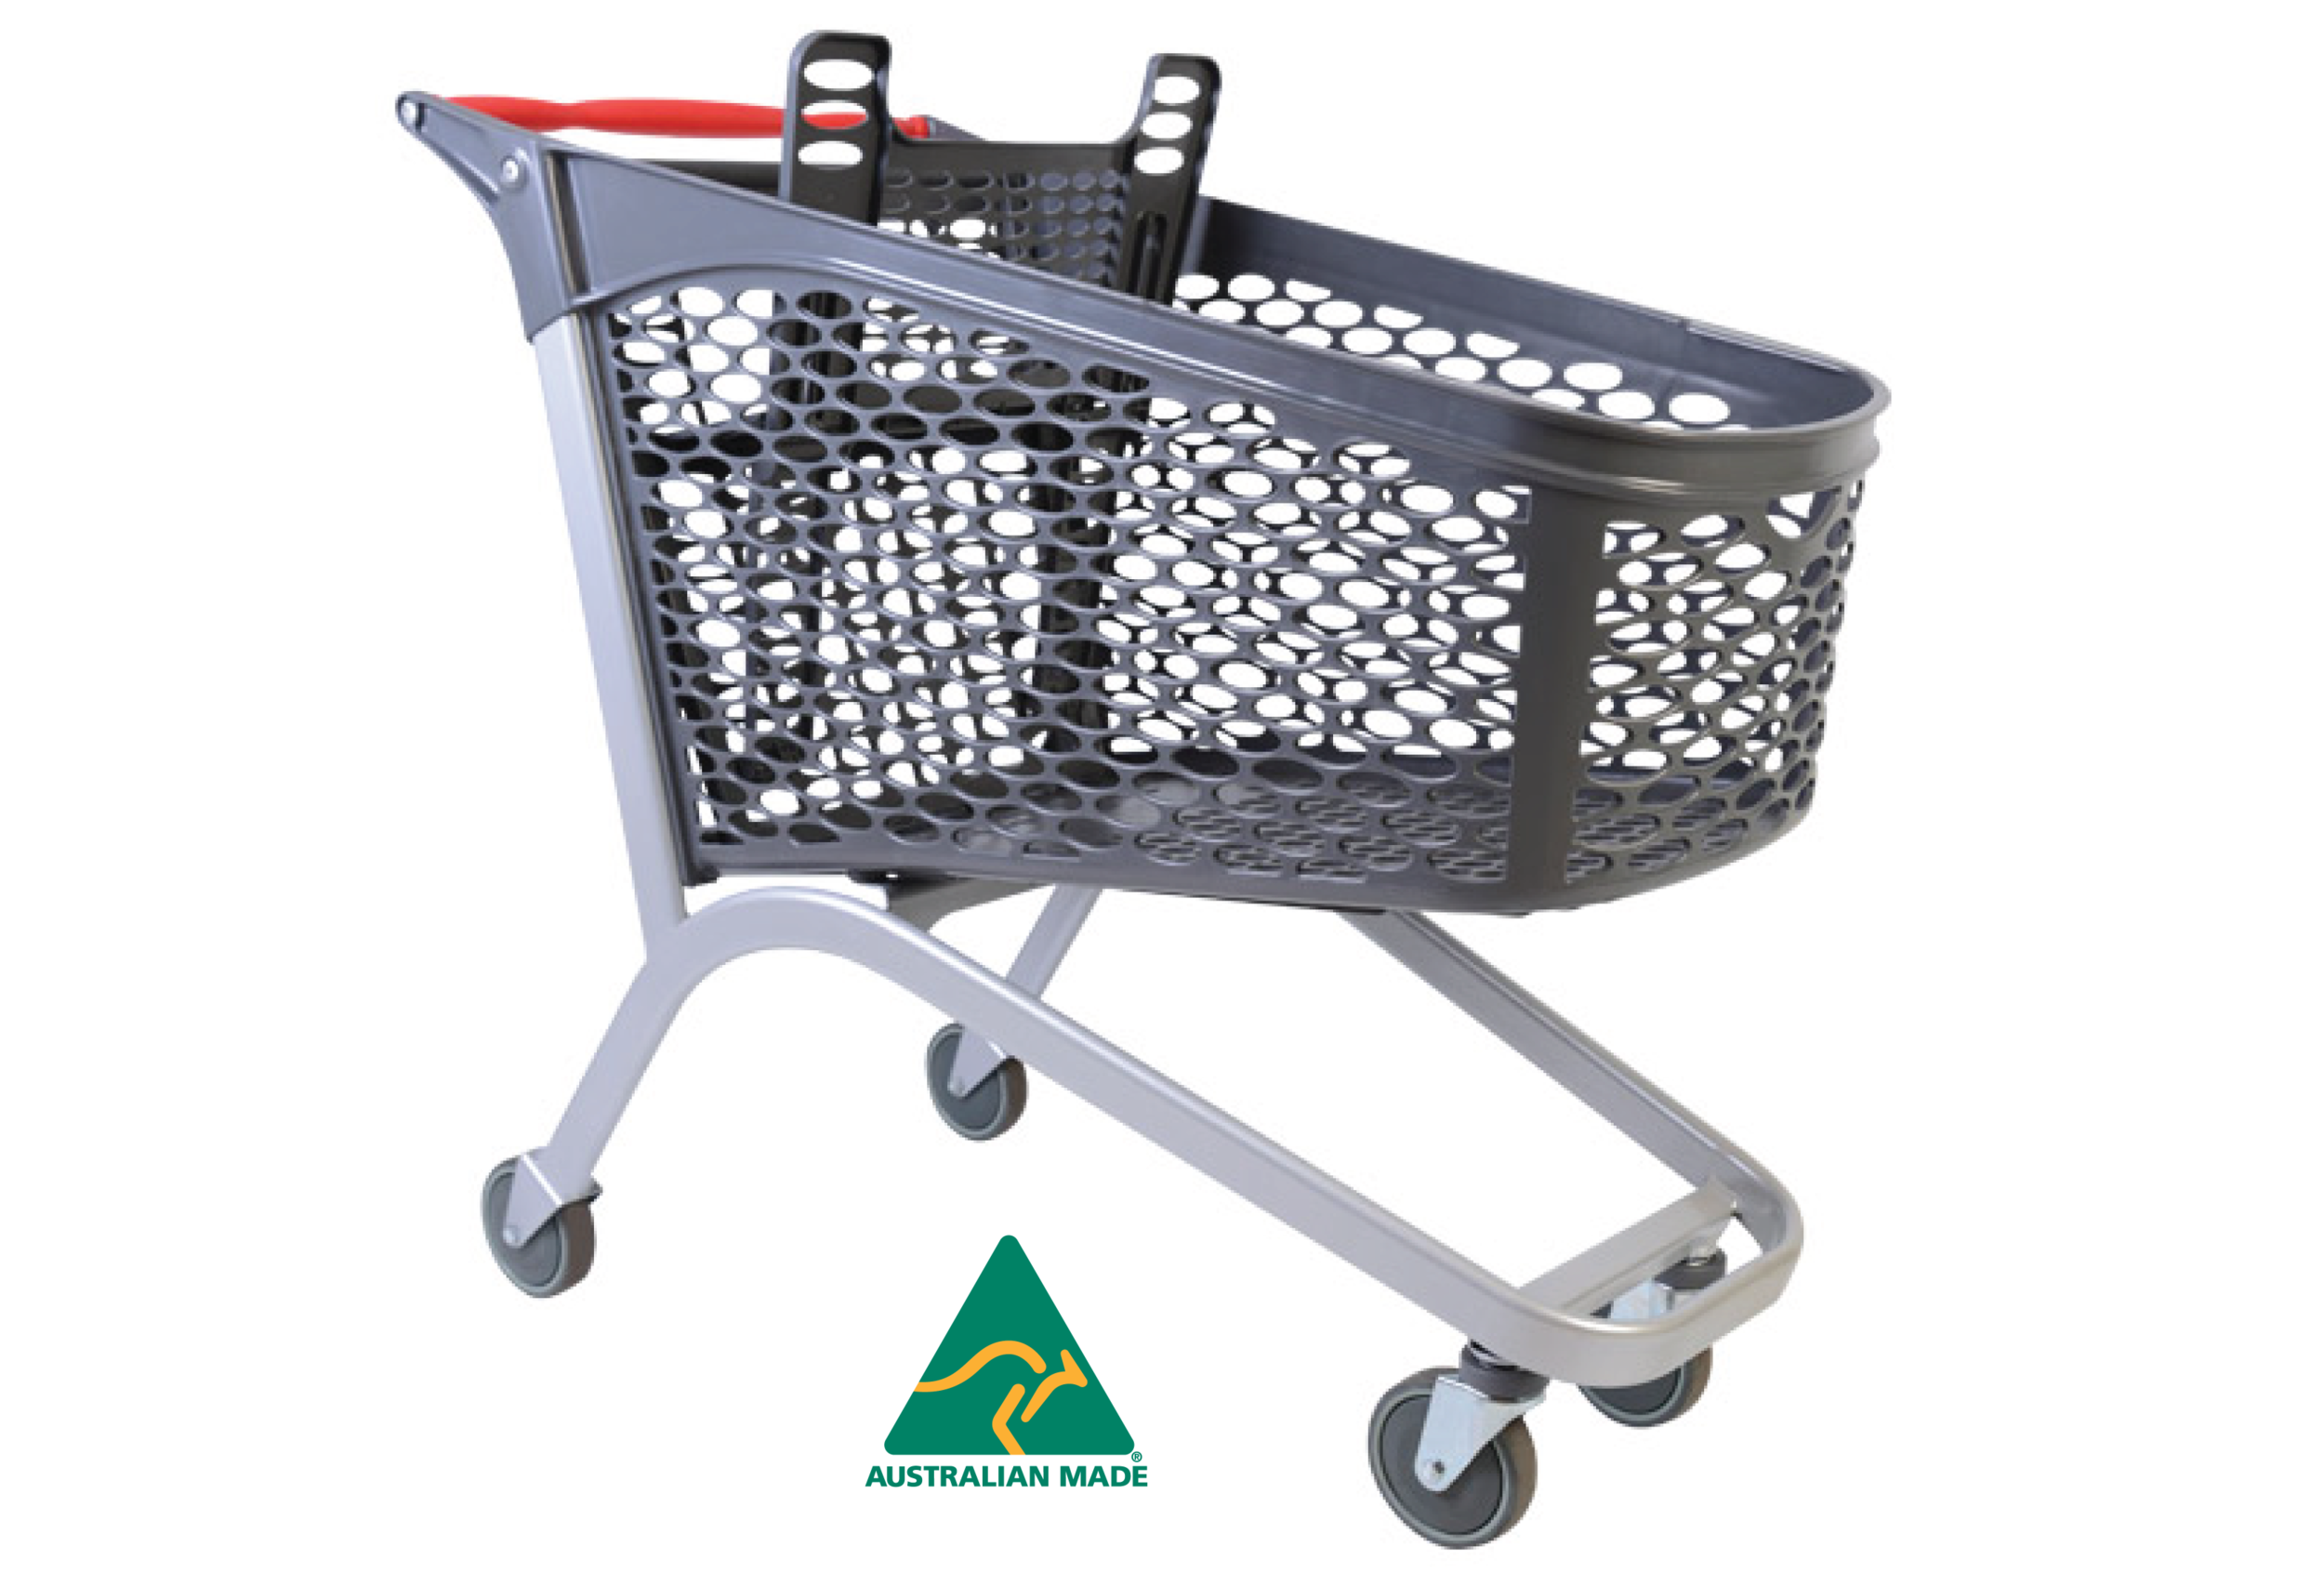 Made in Australia from 100% recycled plastic.  International model shown with 2 fixed rear castors